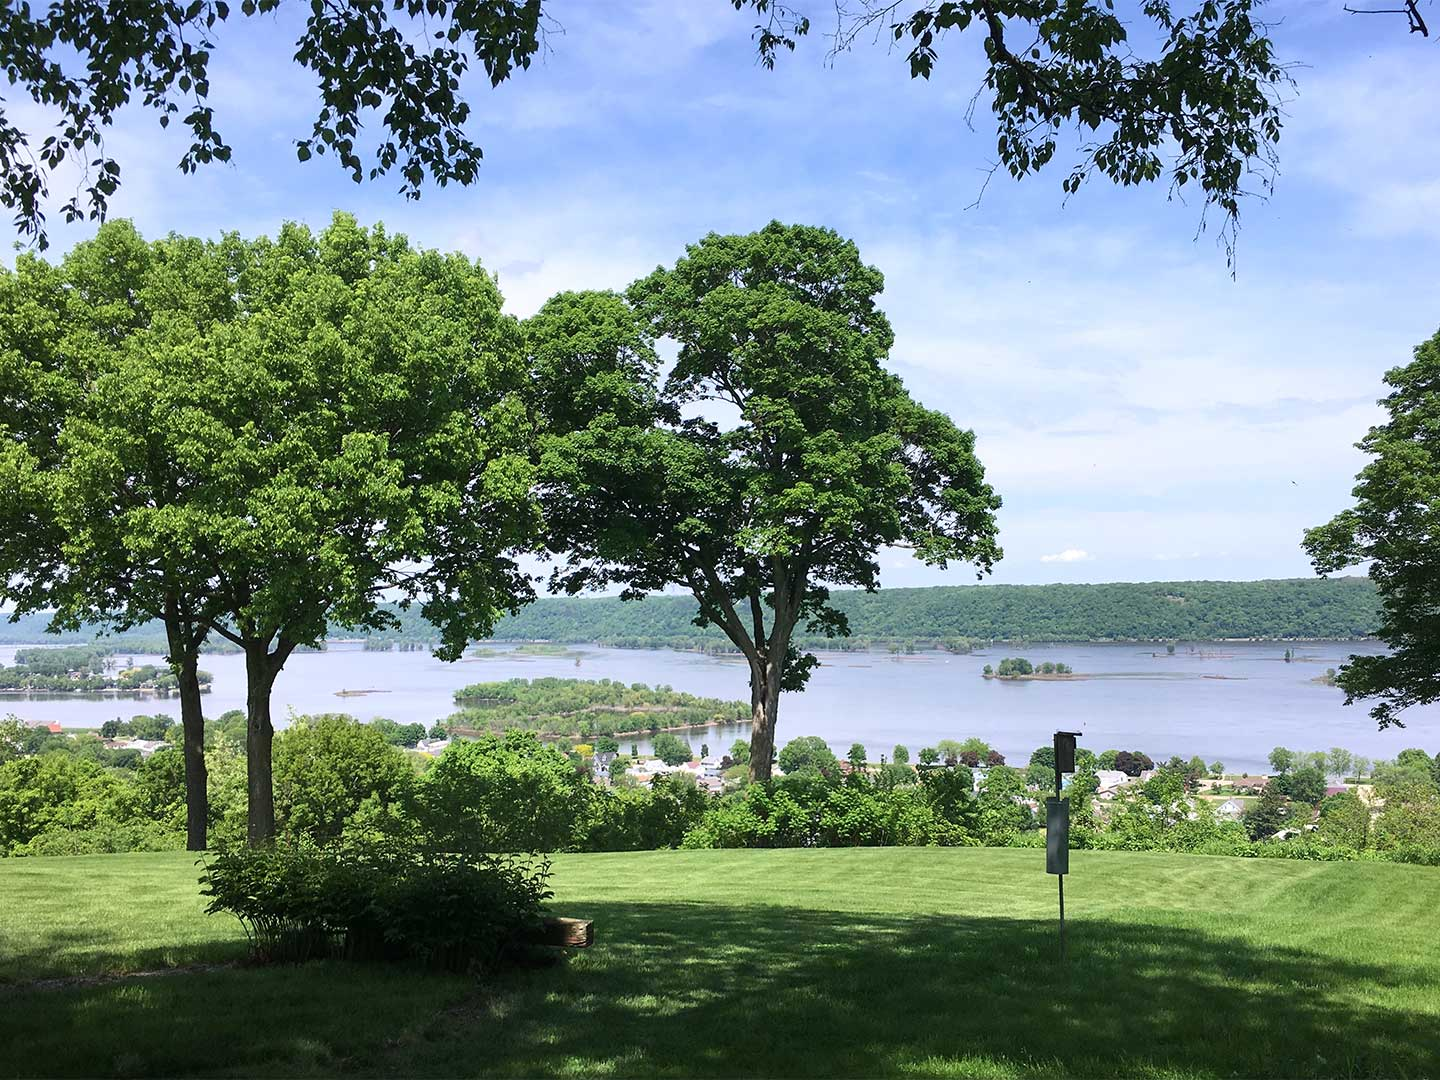 The view of the Mississippi River from Robyn's backyard Guttenberg, IA home.